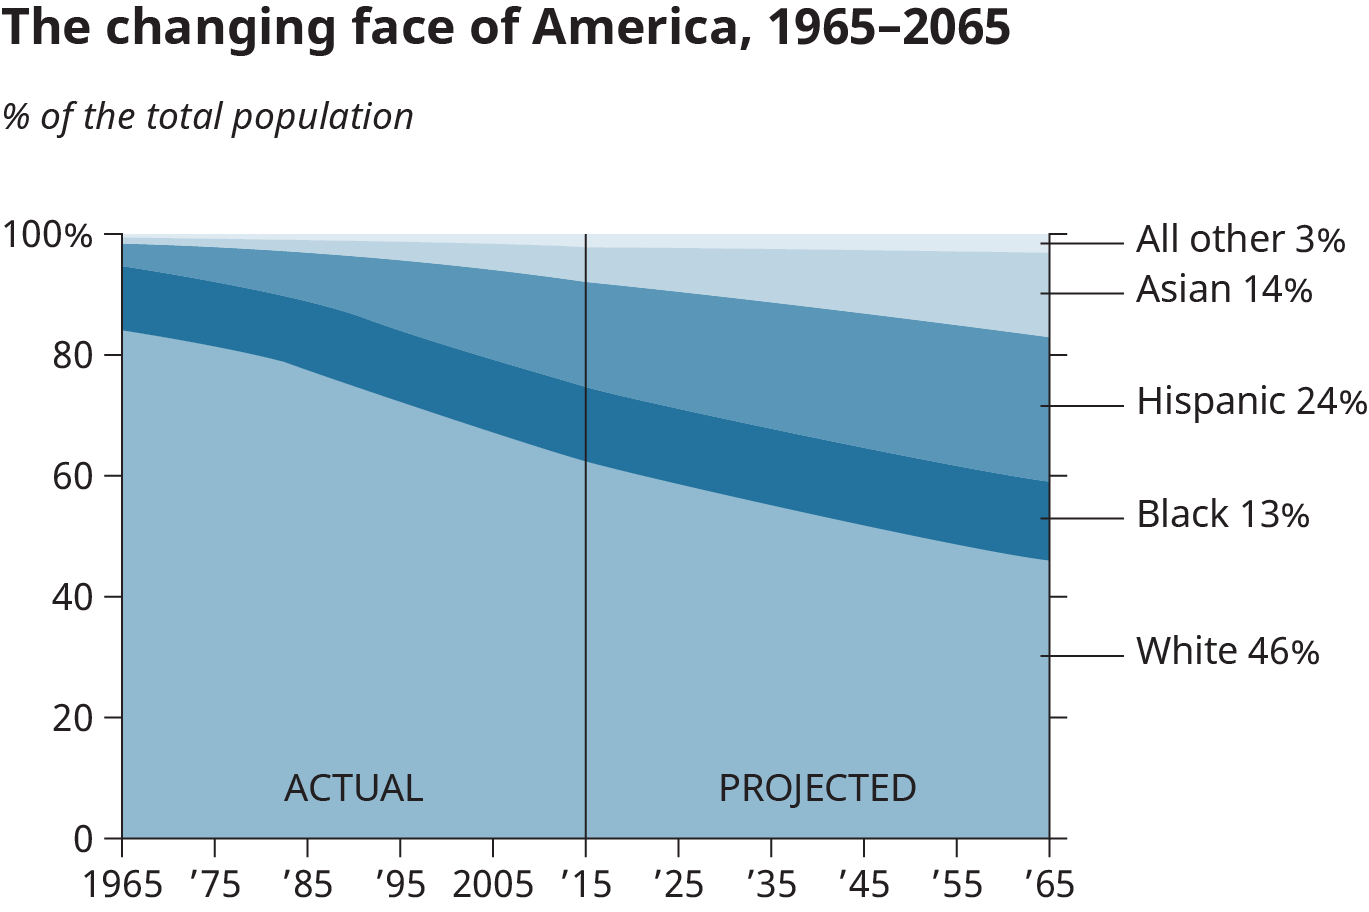 A graphical representation shows the actual and projected percentage of total population of America over the years.